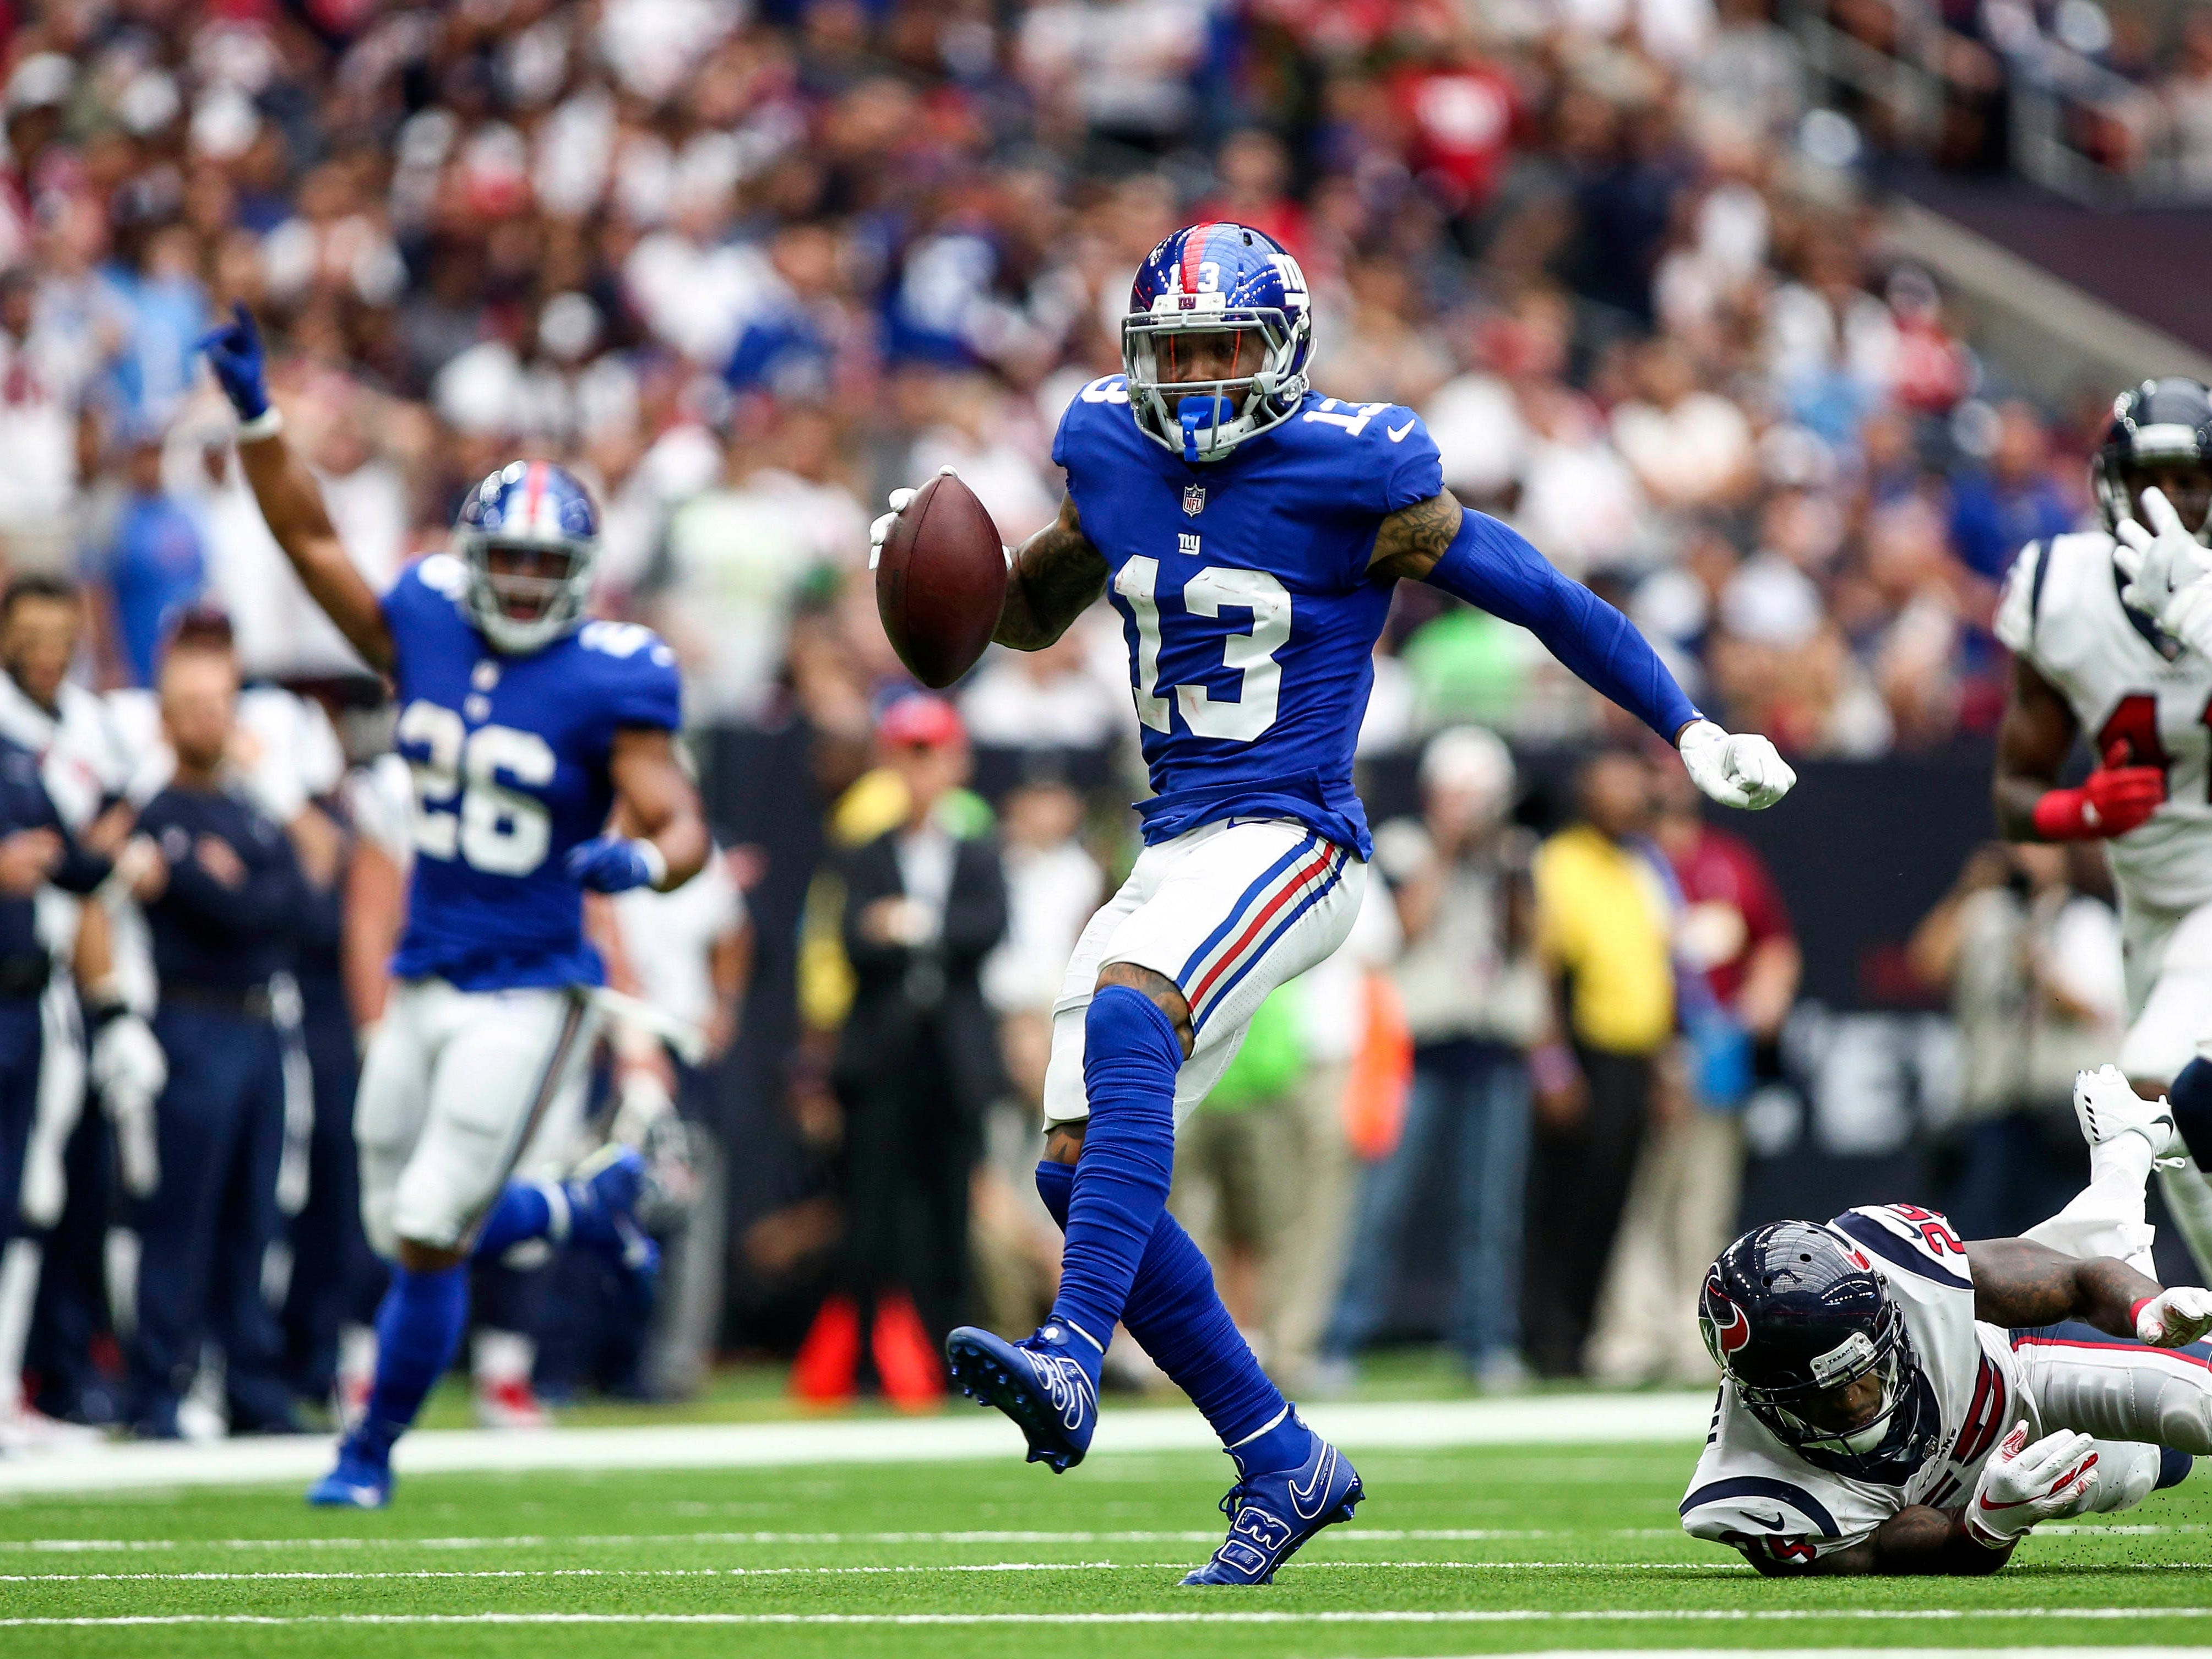 New York Giants wide receiver Odell Beckham runs with the ball during the second quarter against the Houston Texans at NRG Stadium.